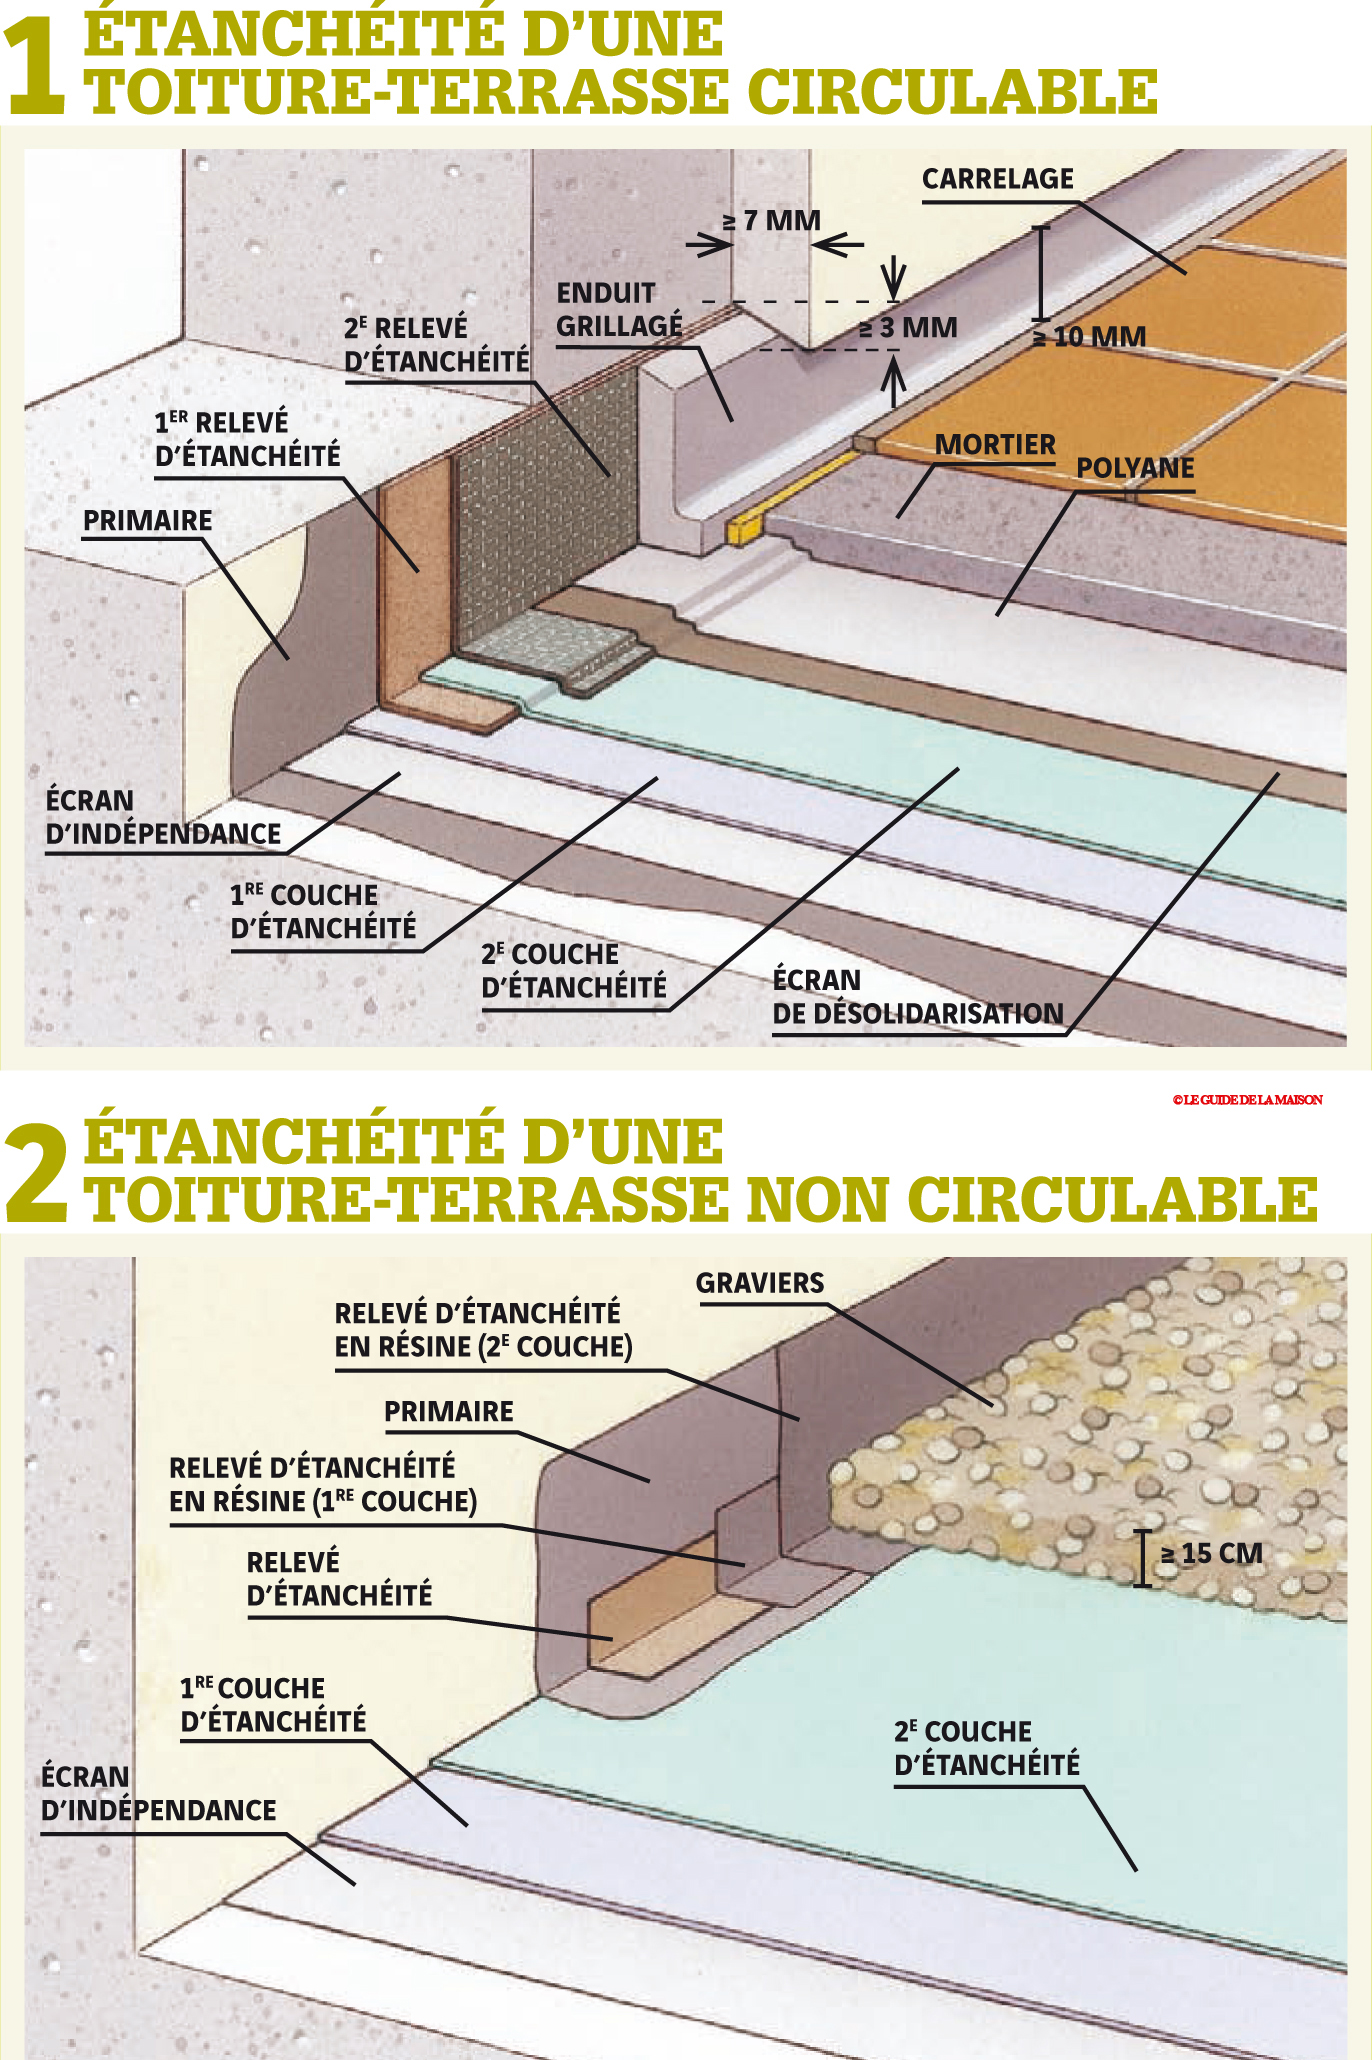 Fiche faire l 39 tanch it des toitures terrasses le for Etancheite terrasse avant pose carrelage